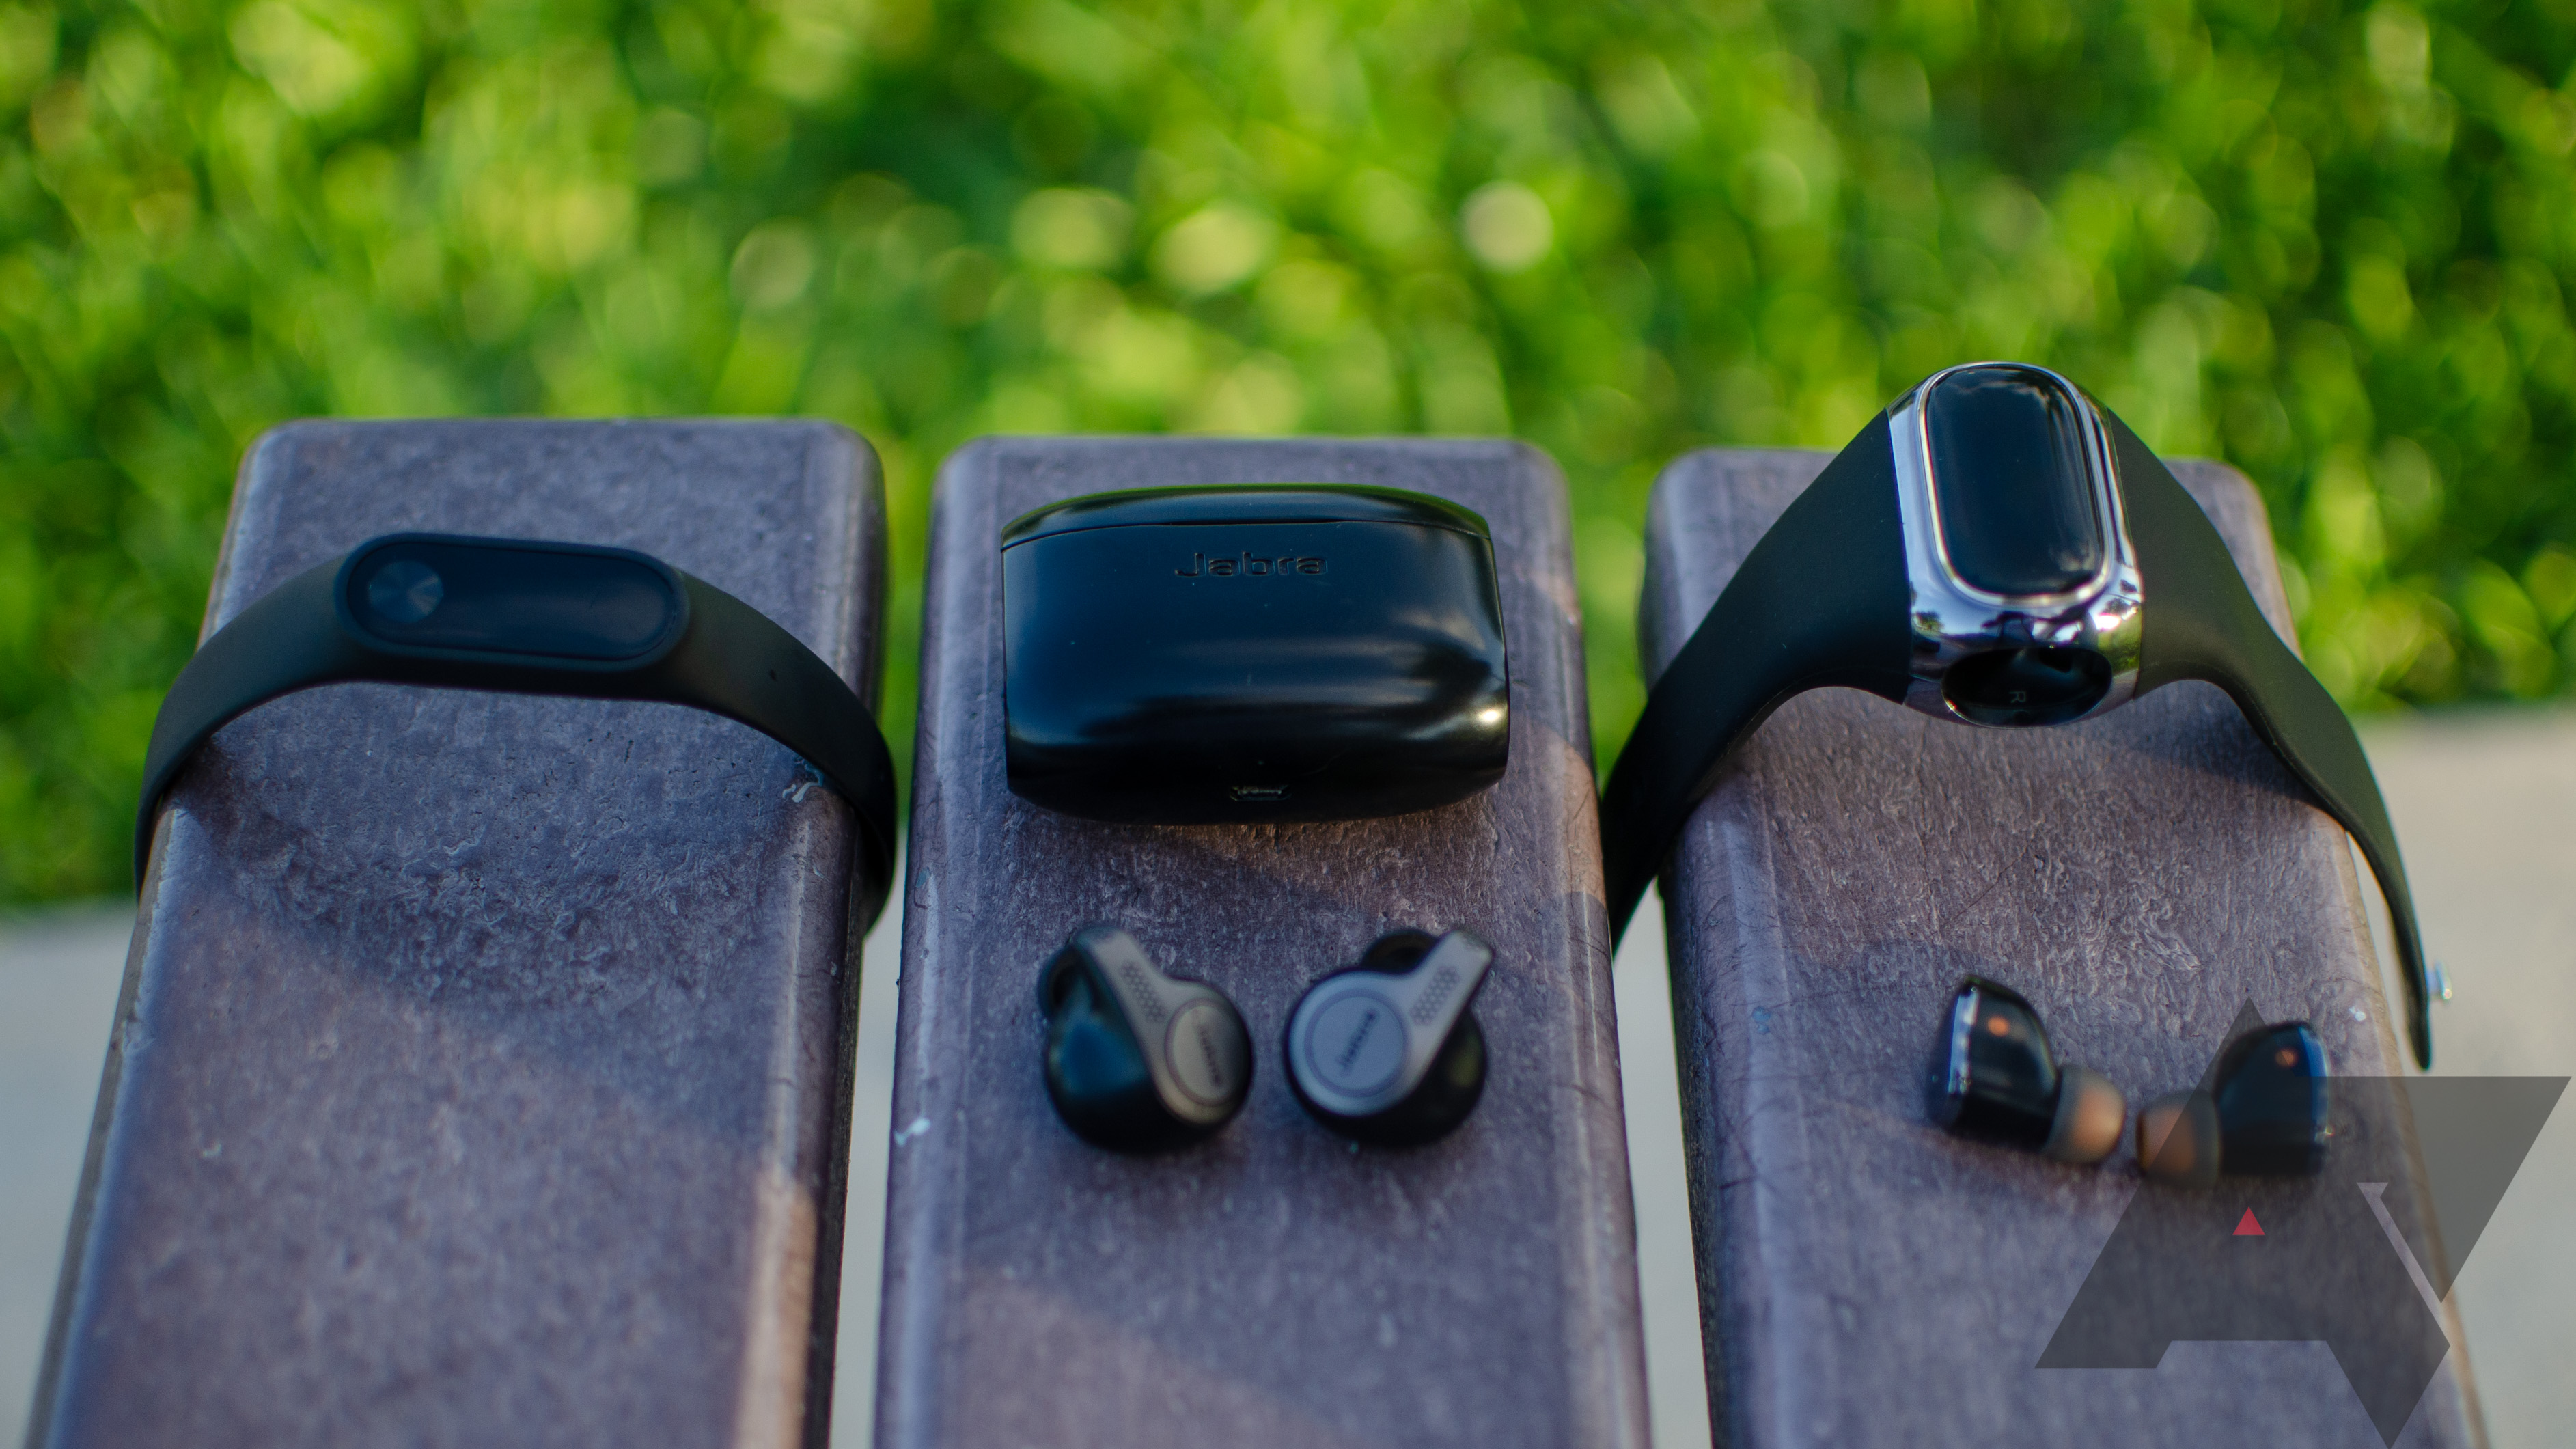 Aipower Wearbuds review: Halfway to a good product